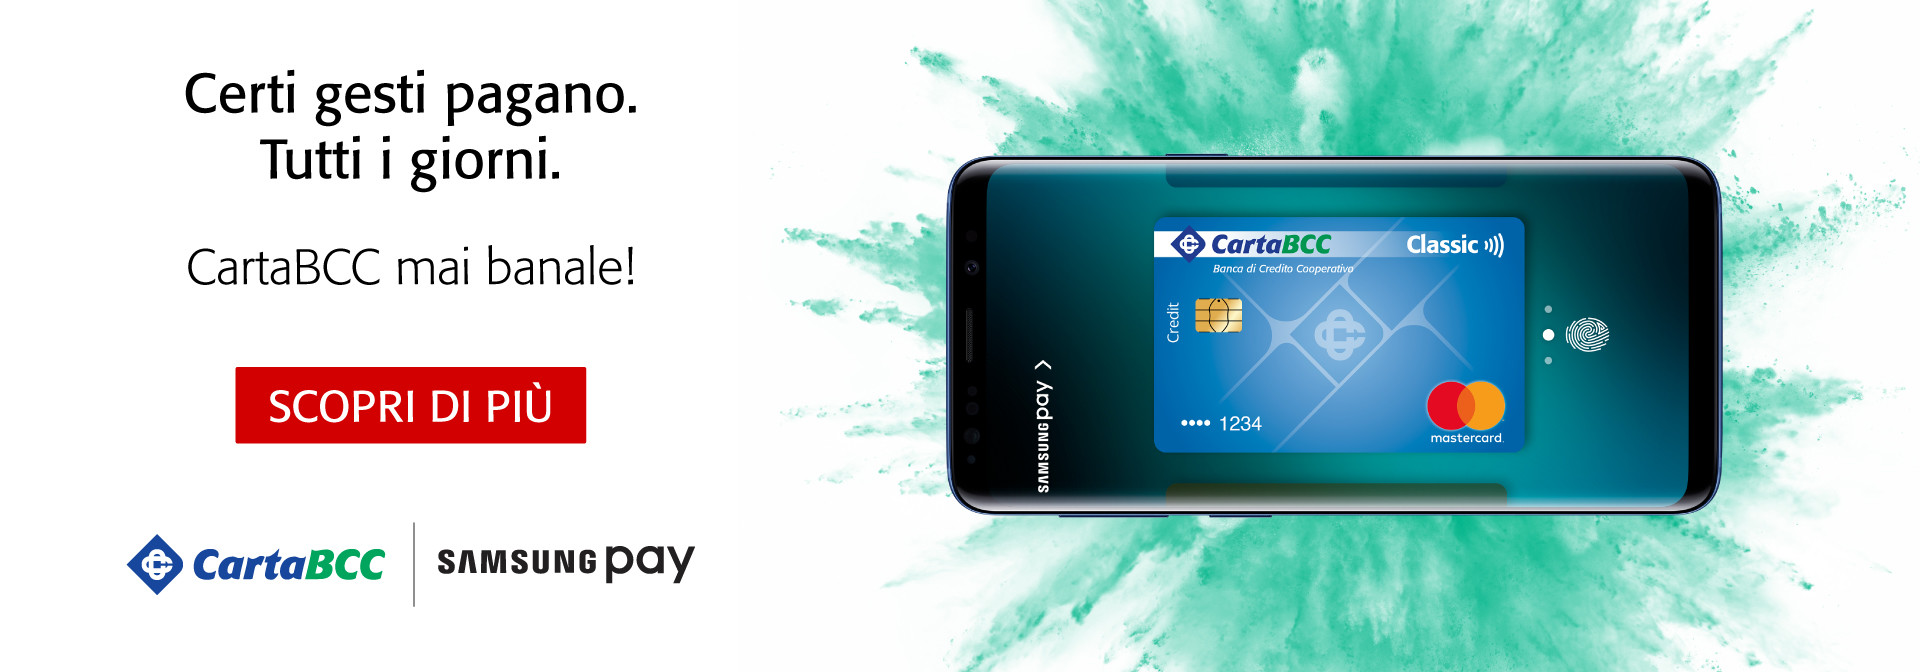 Samsung Pay CartaBCC